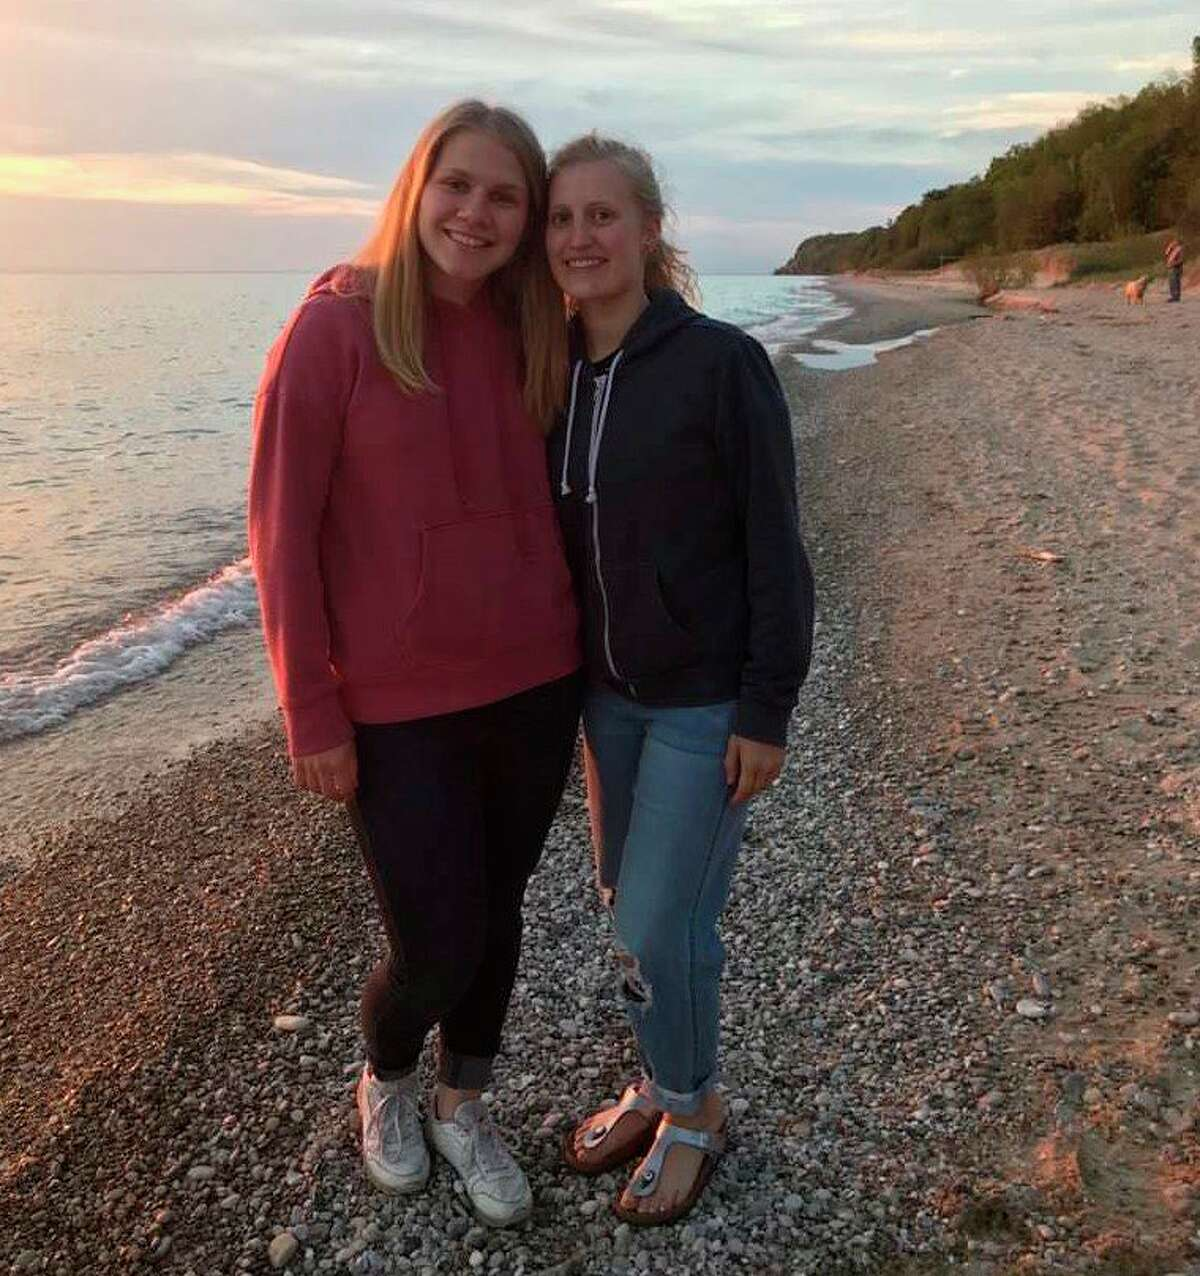 Solveig Saeternes from Trondheim, Norway and Laura Krause from Germany enjoy a sunset on Lake Michigan during their stay in Bear Lake. Both of the former foreign exchange students shared what conditions are like in their country with the COVID-19 pandemic. (Courtesy photo)